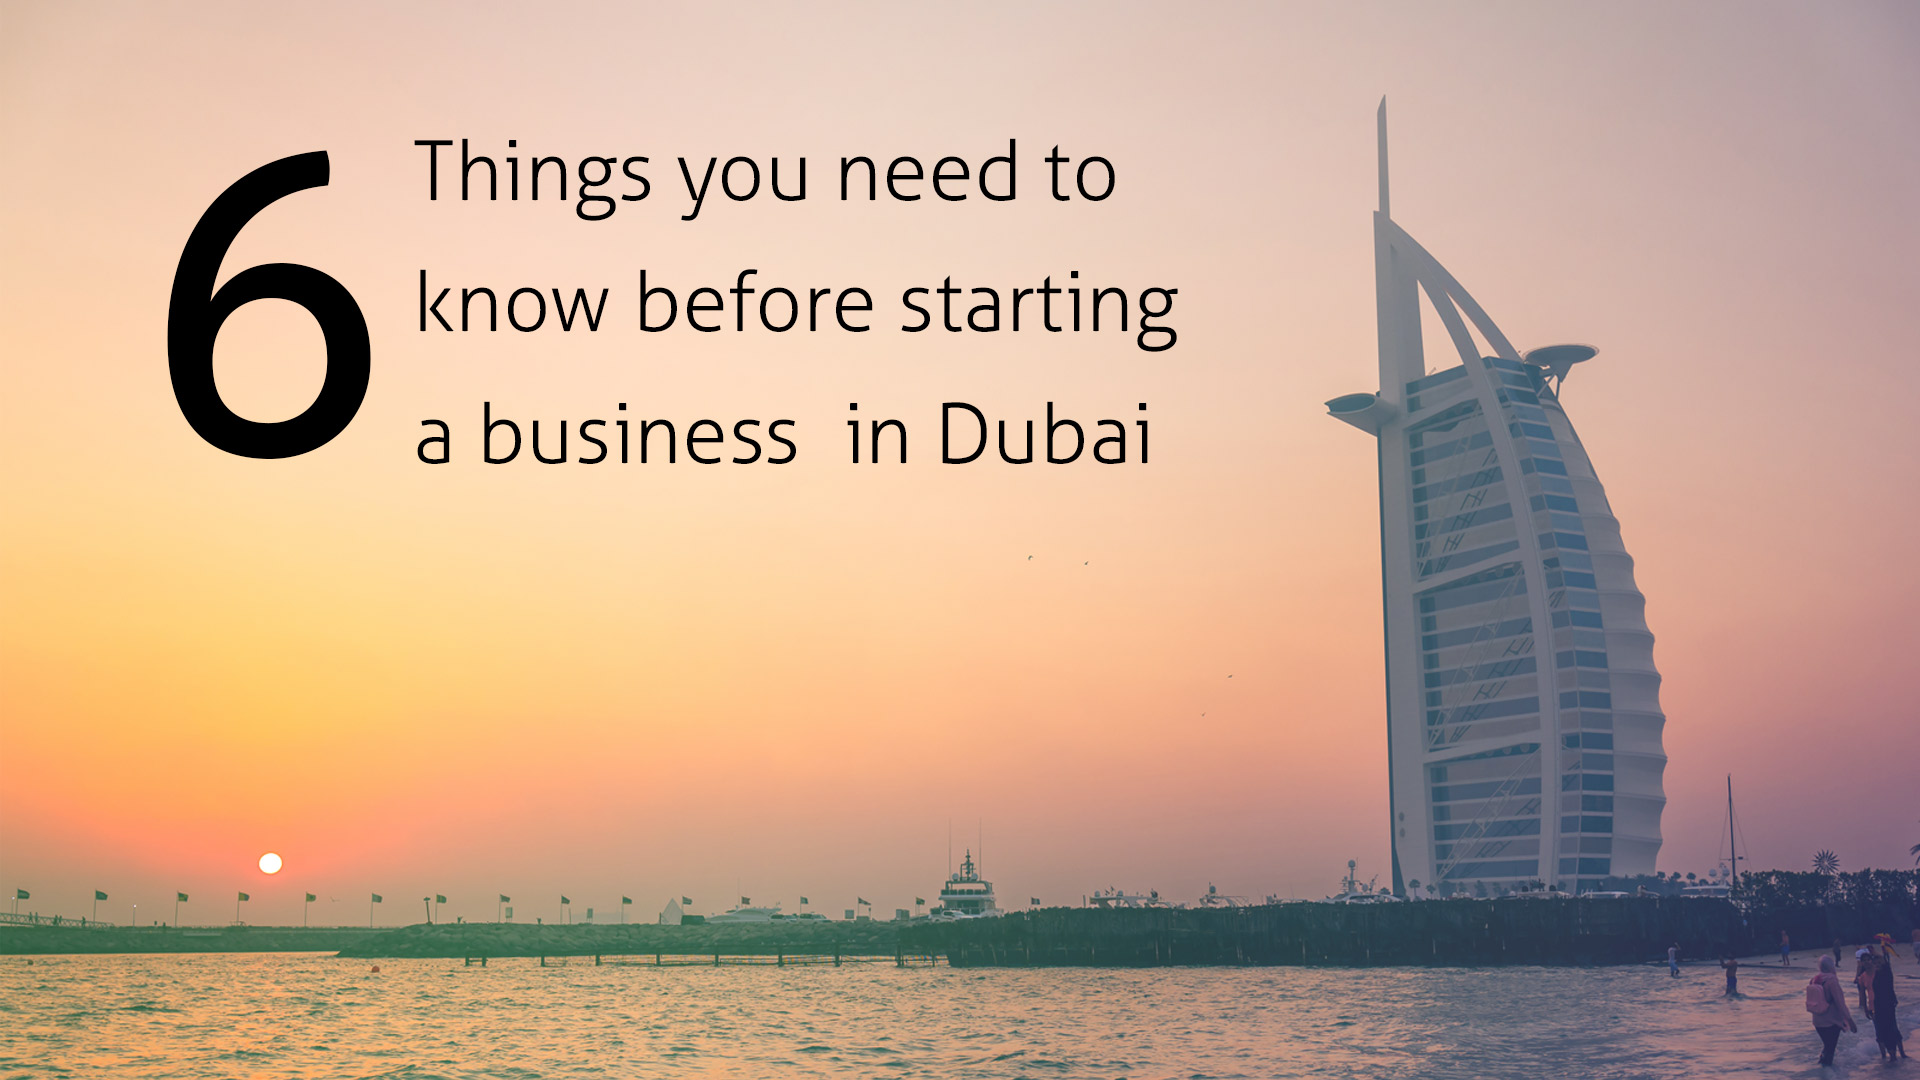 6 Things you need to know before starting a business in Dubai